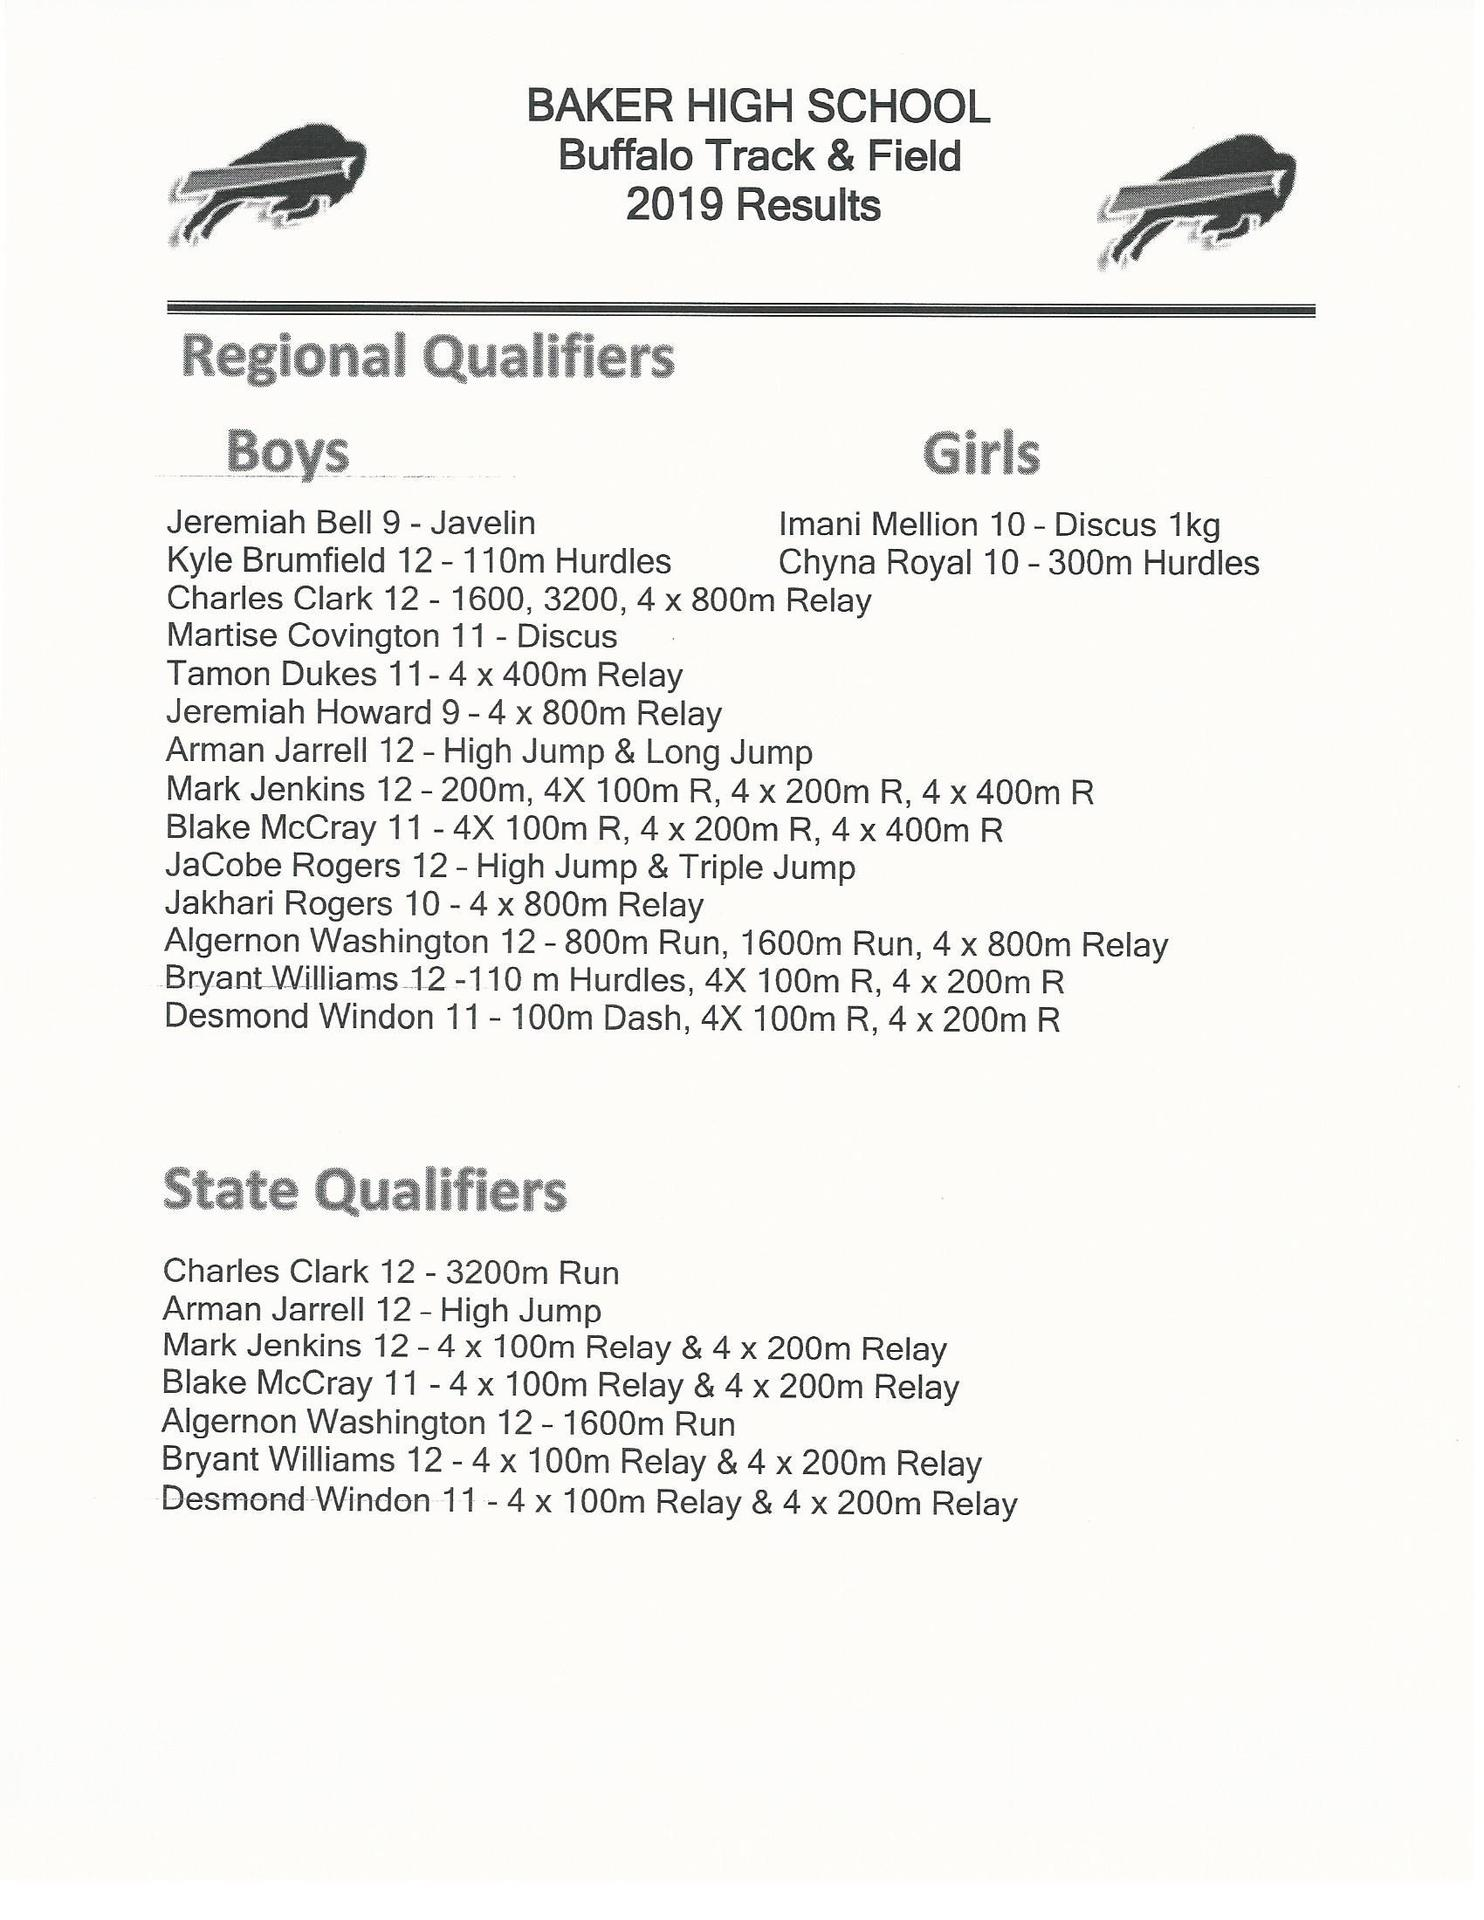 A photo of document listing the Baker High School Track Team Regioinal and State Qualifiers